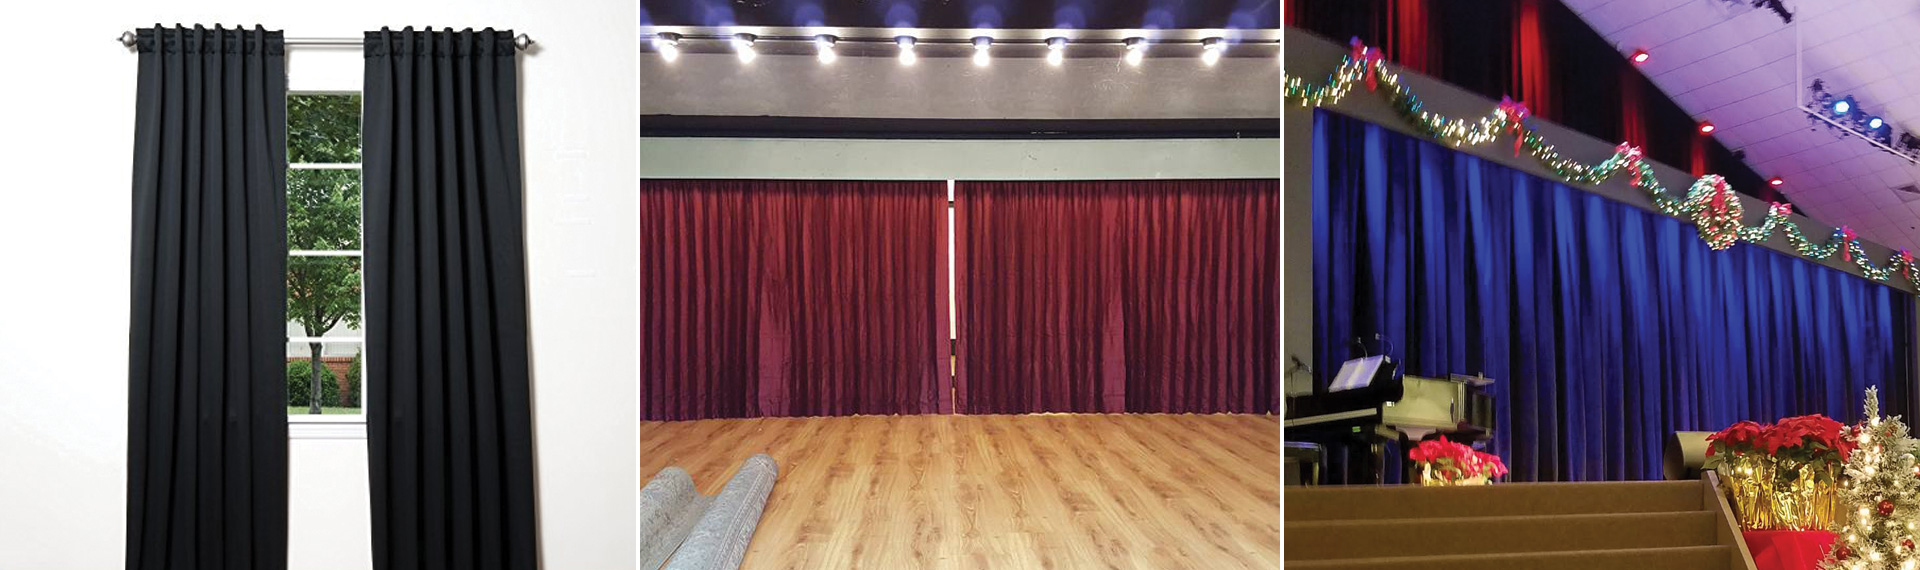 Custom Sewn, Luxury Cotton Velvet Curtains Los Angeles CA